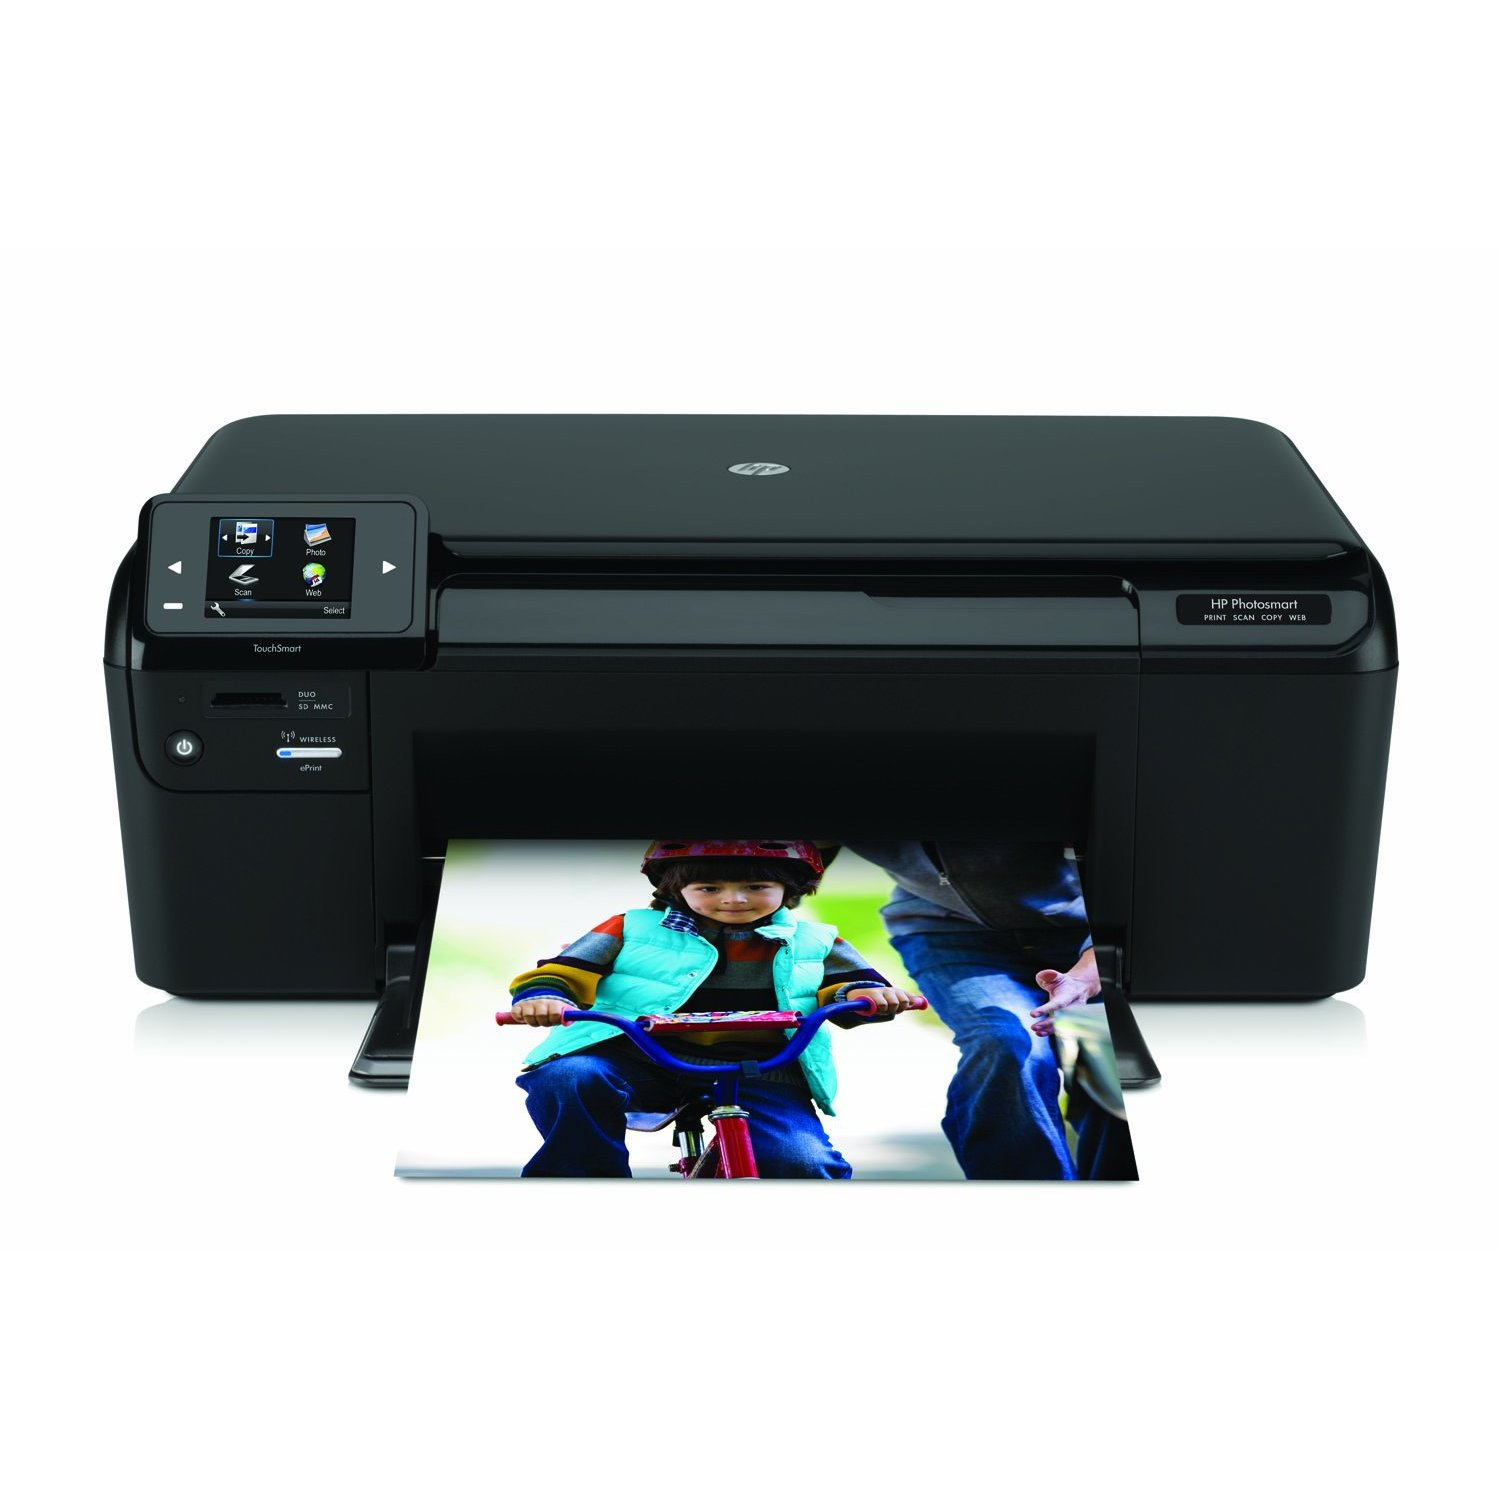 B00004Z5SM in addition Gartner Studios Design Paper 8 12 in addition Diy Outdoor Christmas Decorations further Frfr together with Hp photosmart d110. on printers at office depot